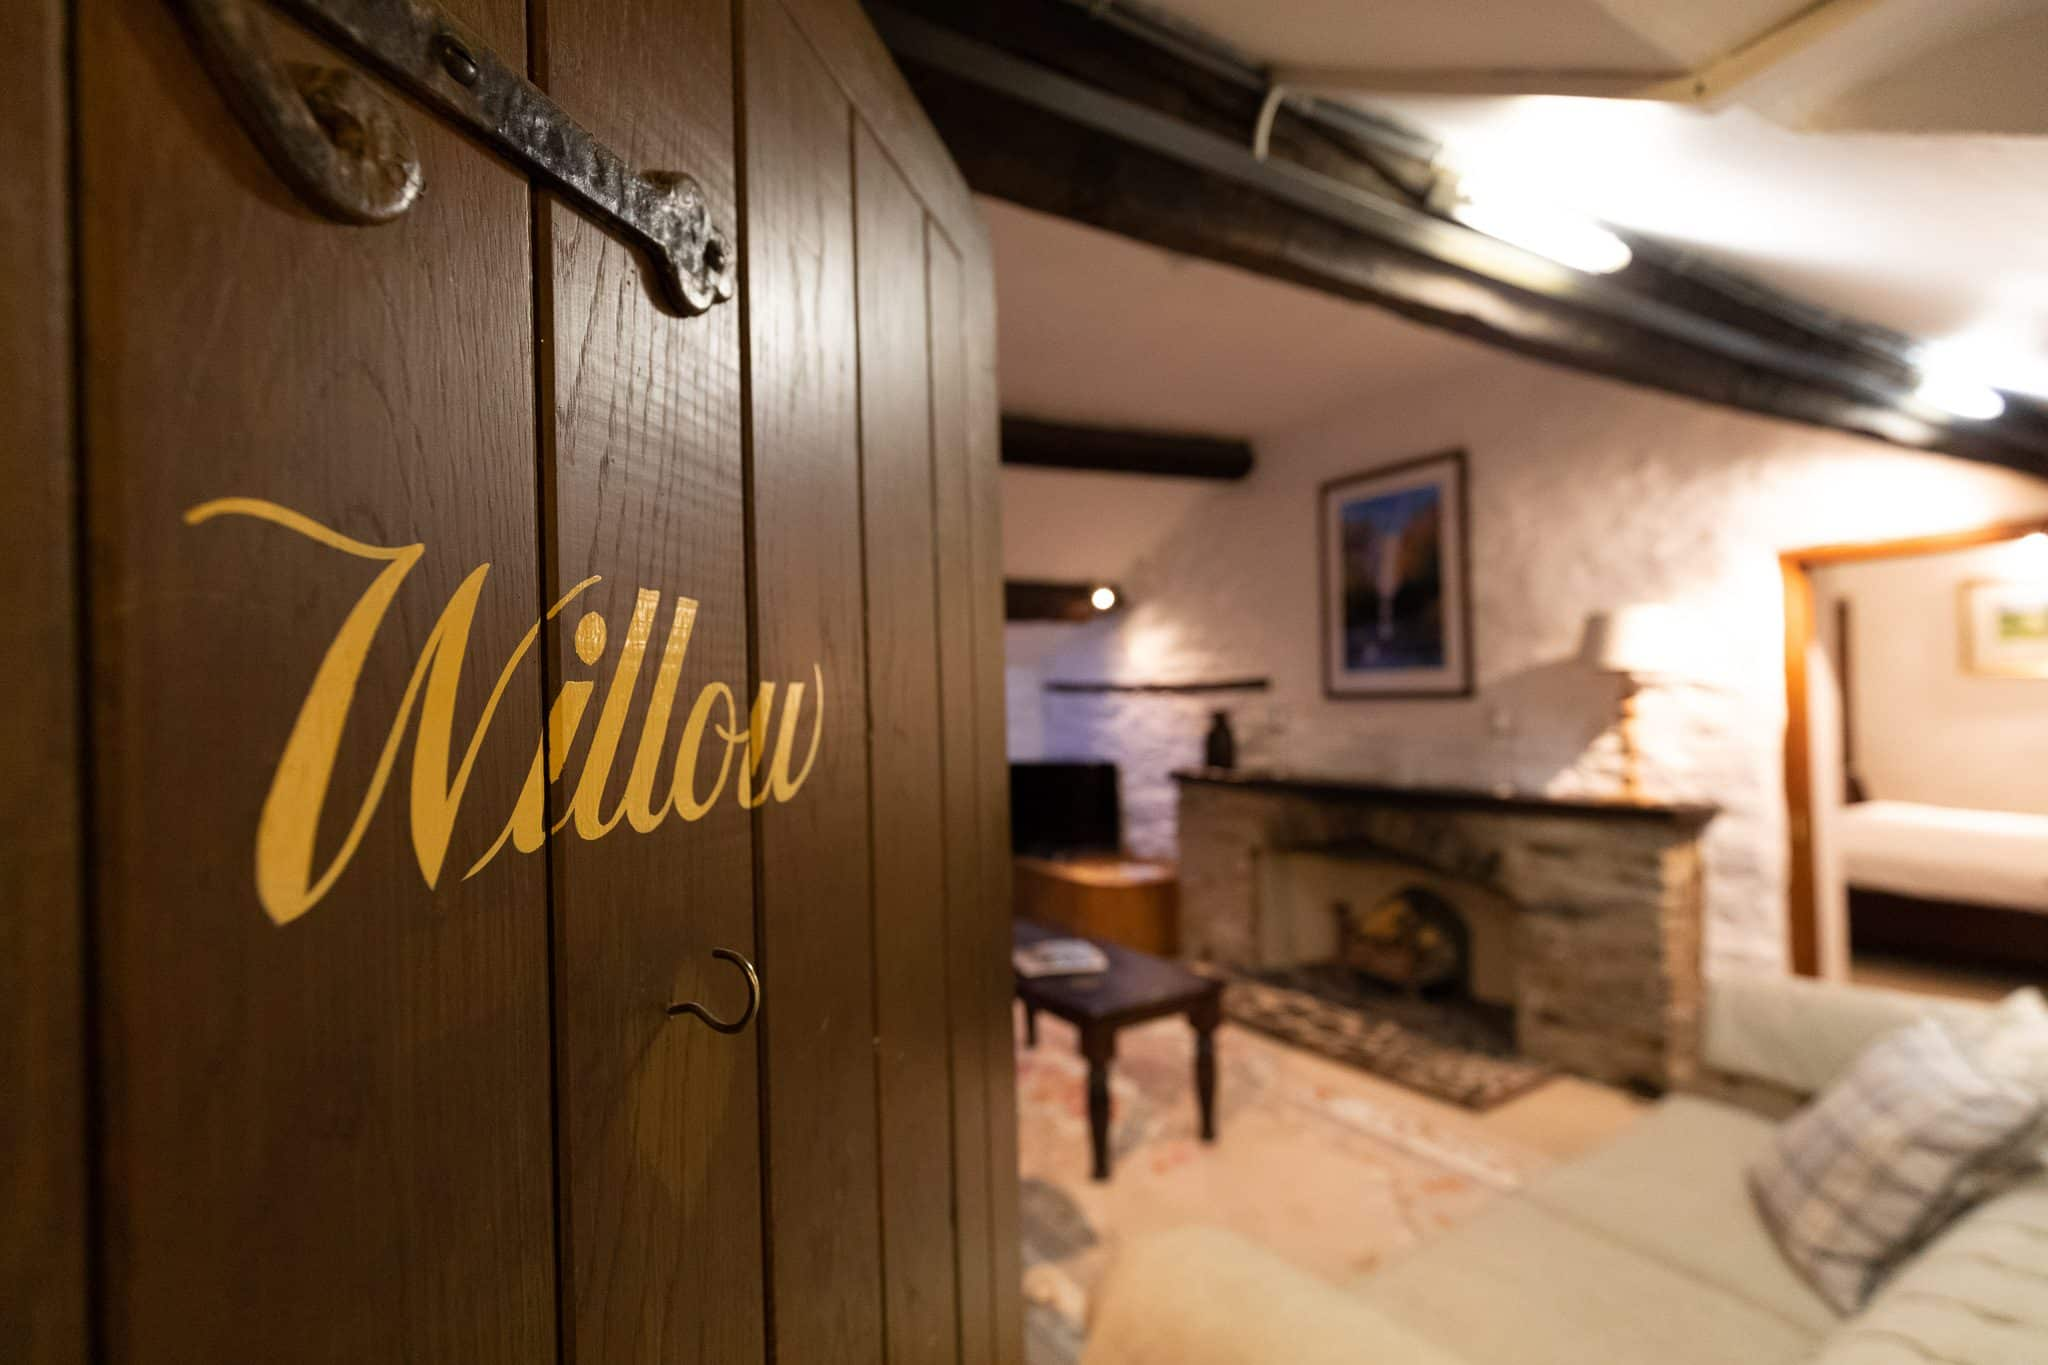 Image of willow suite at The West Arms, luxury hotel in Snowdonia.